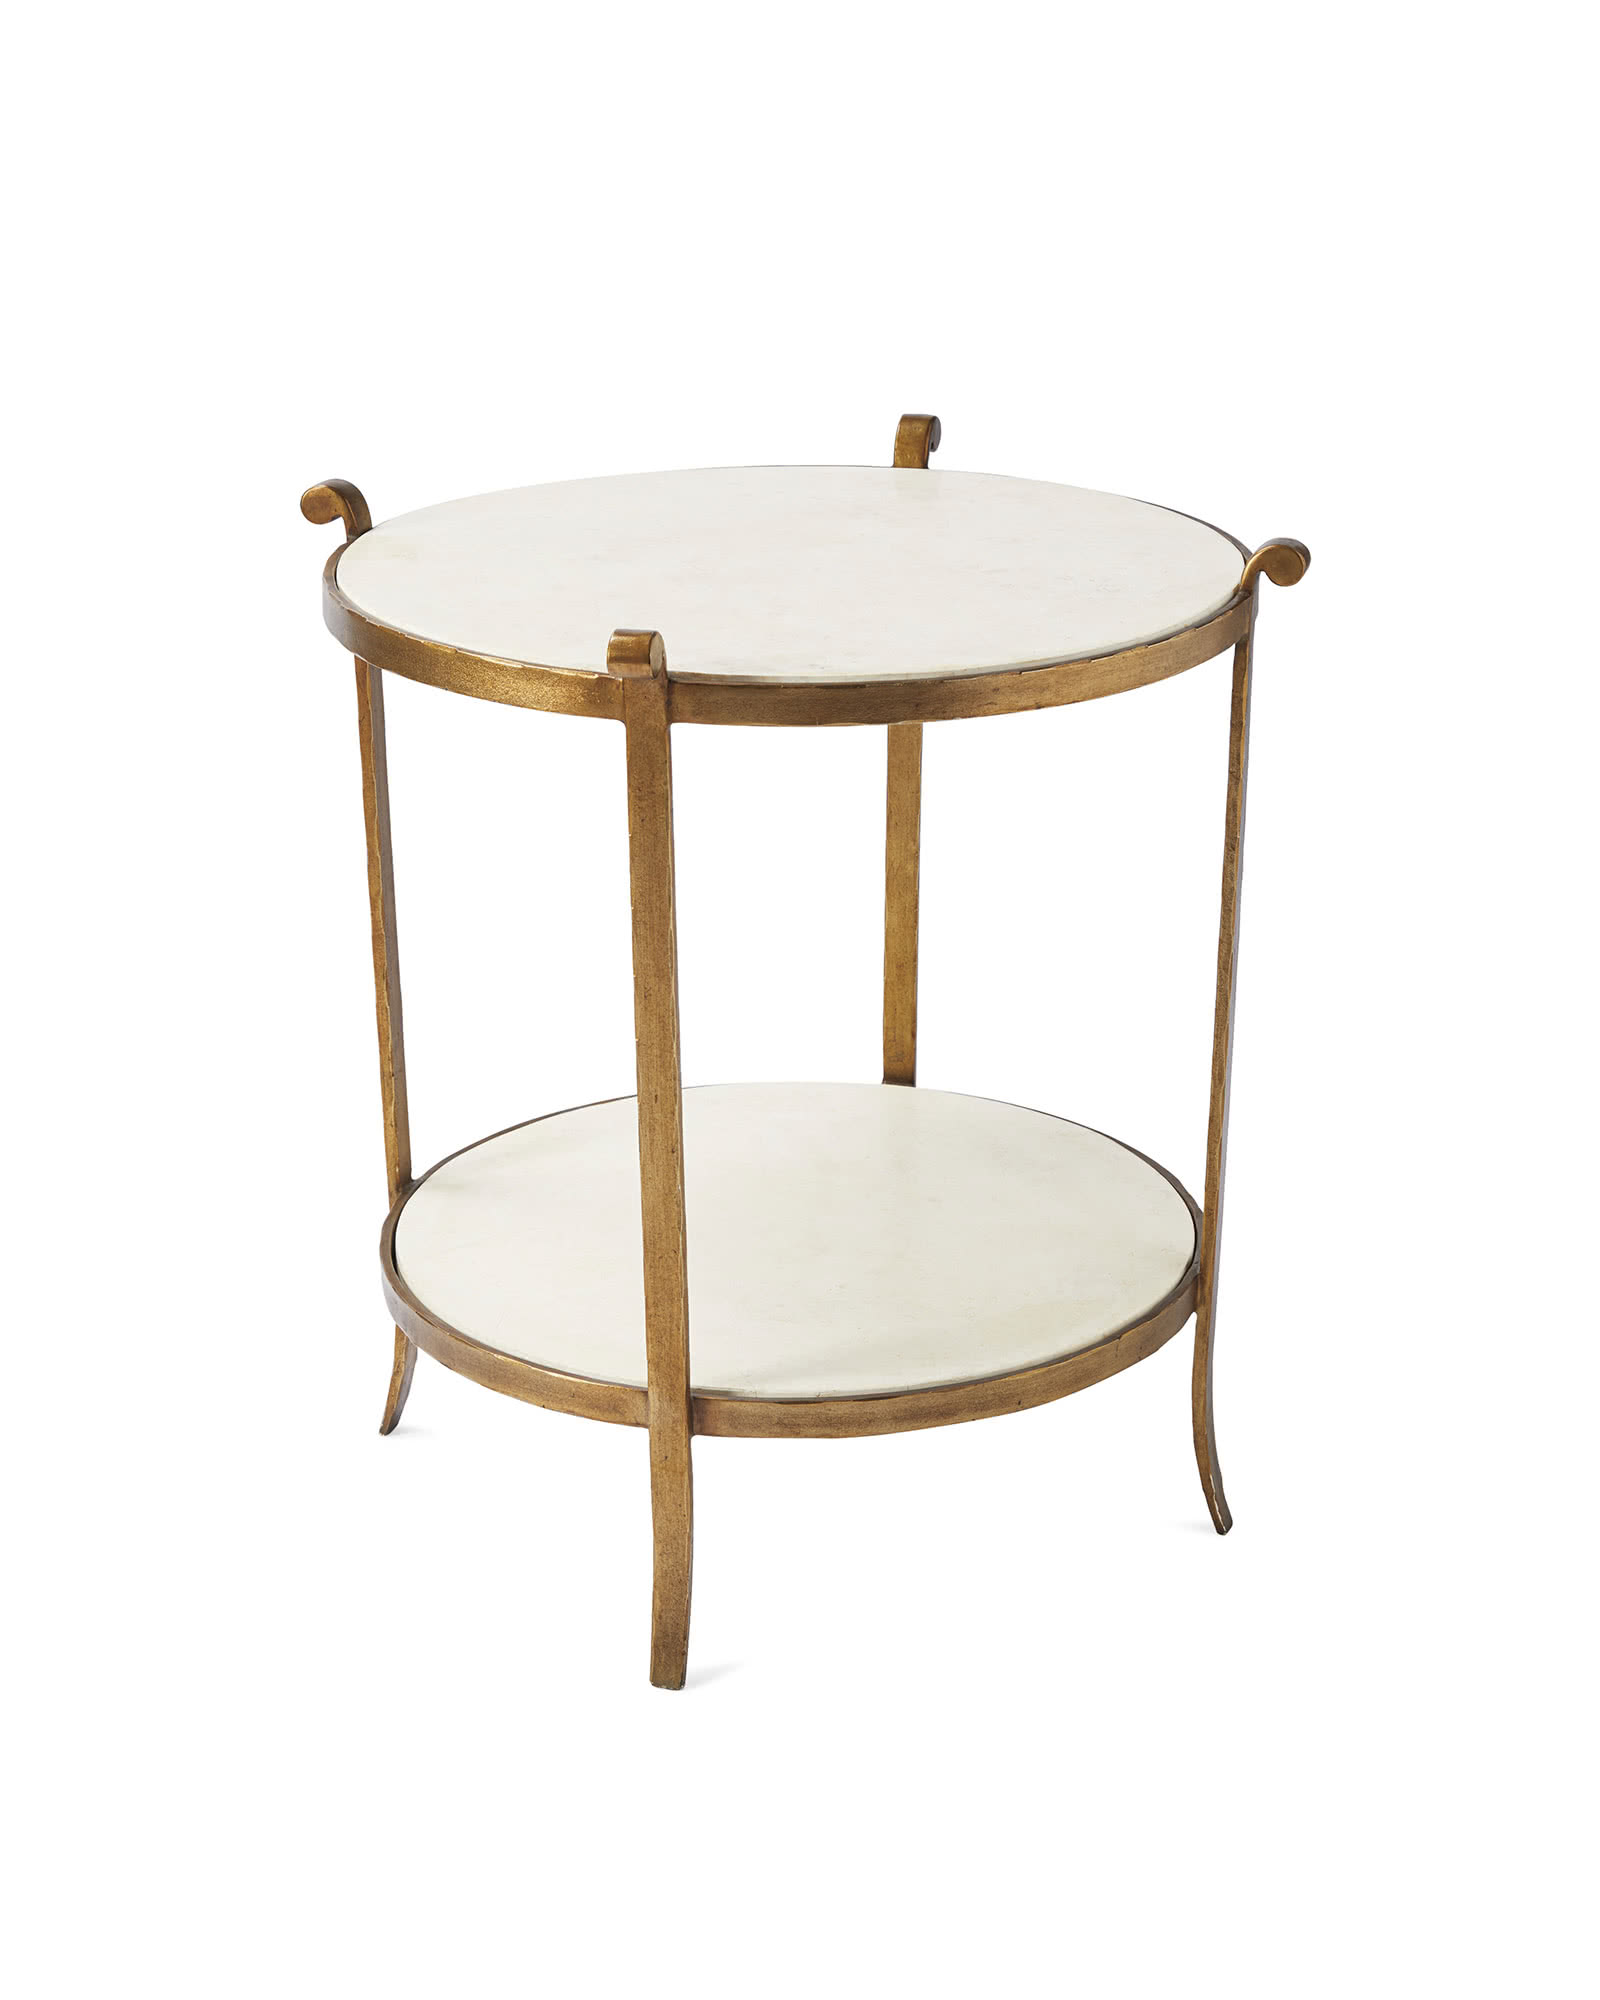 St Germain Round Side Table